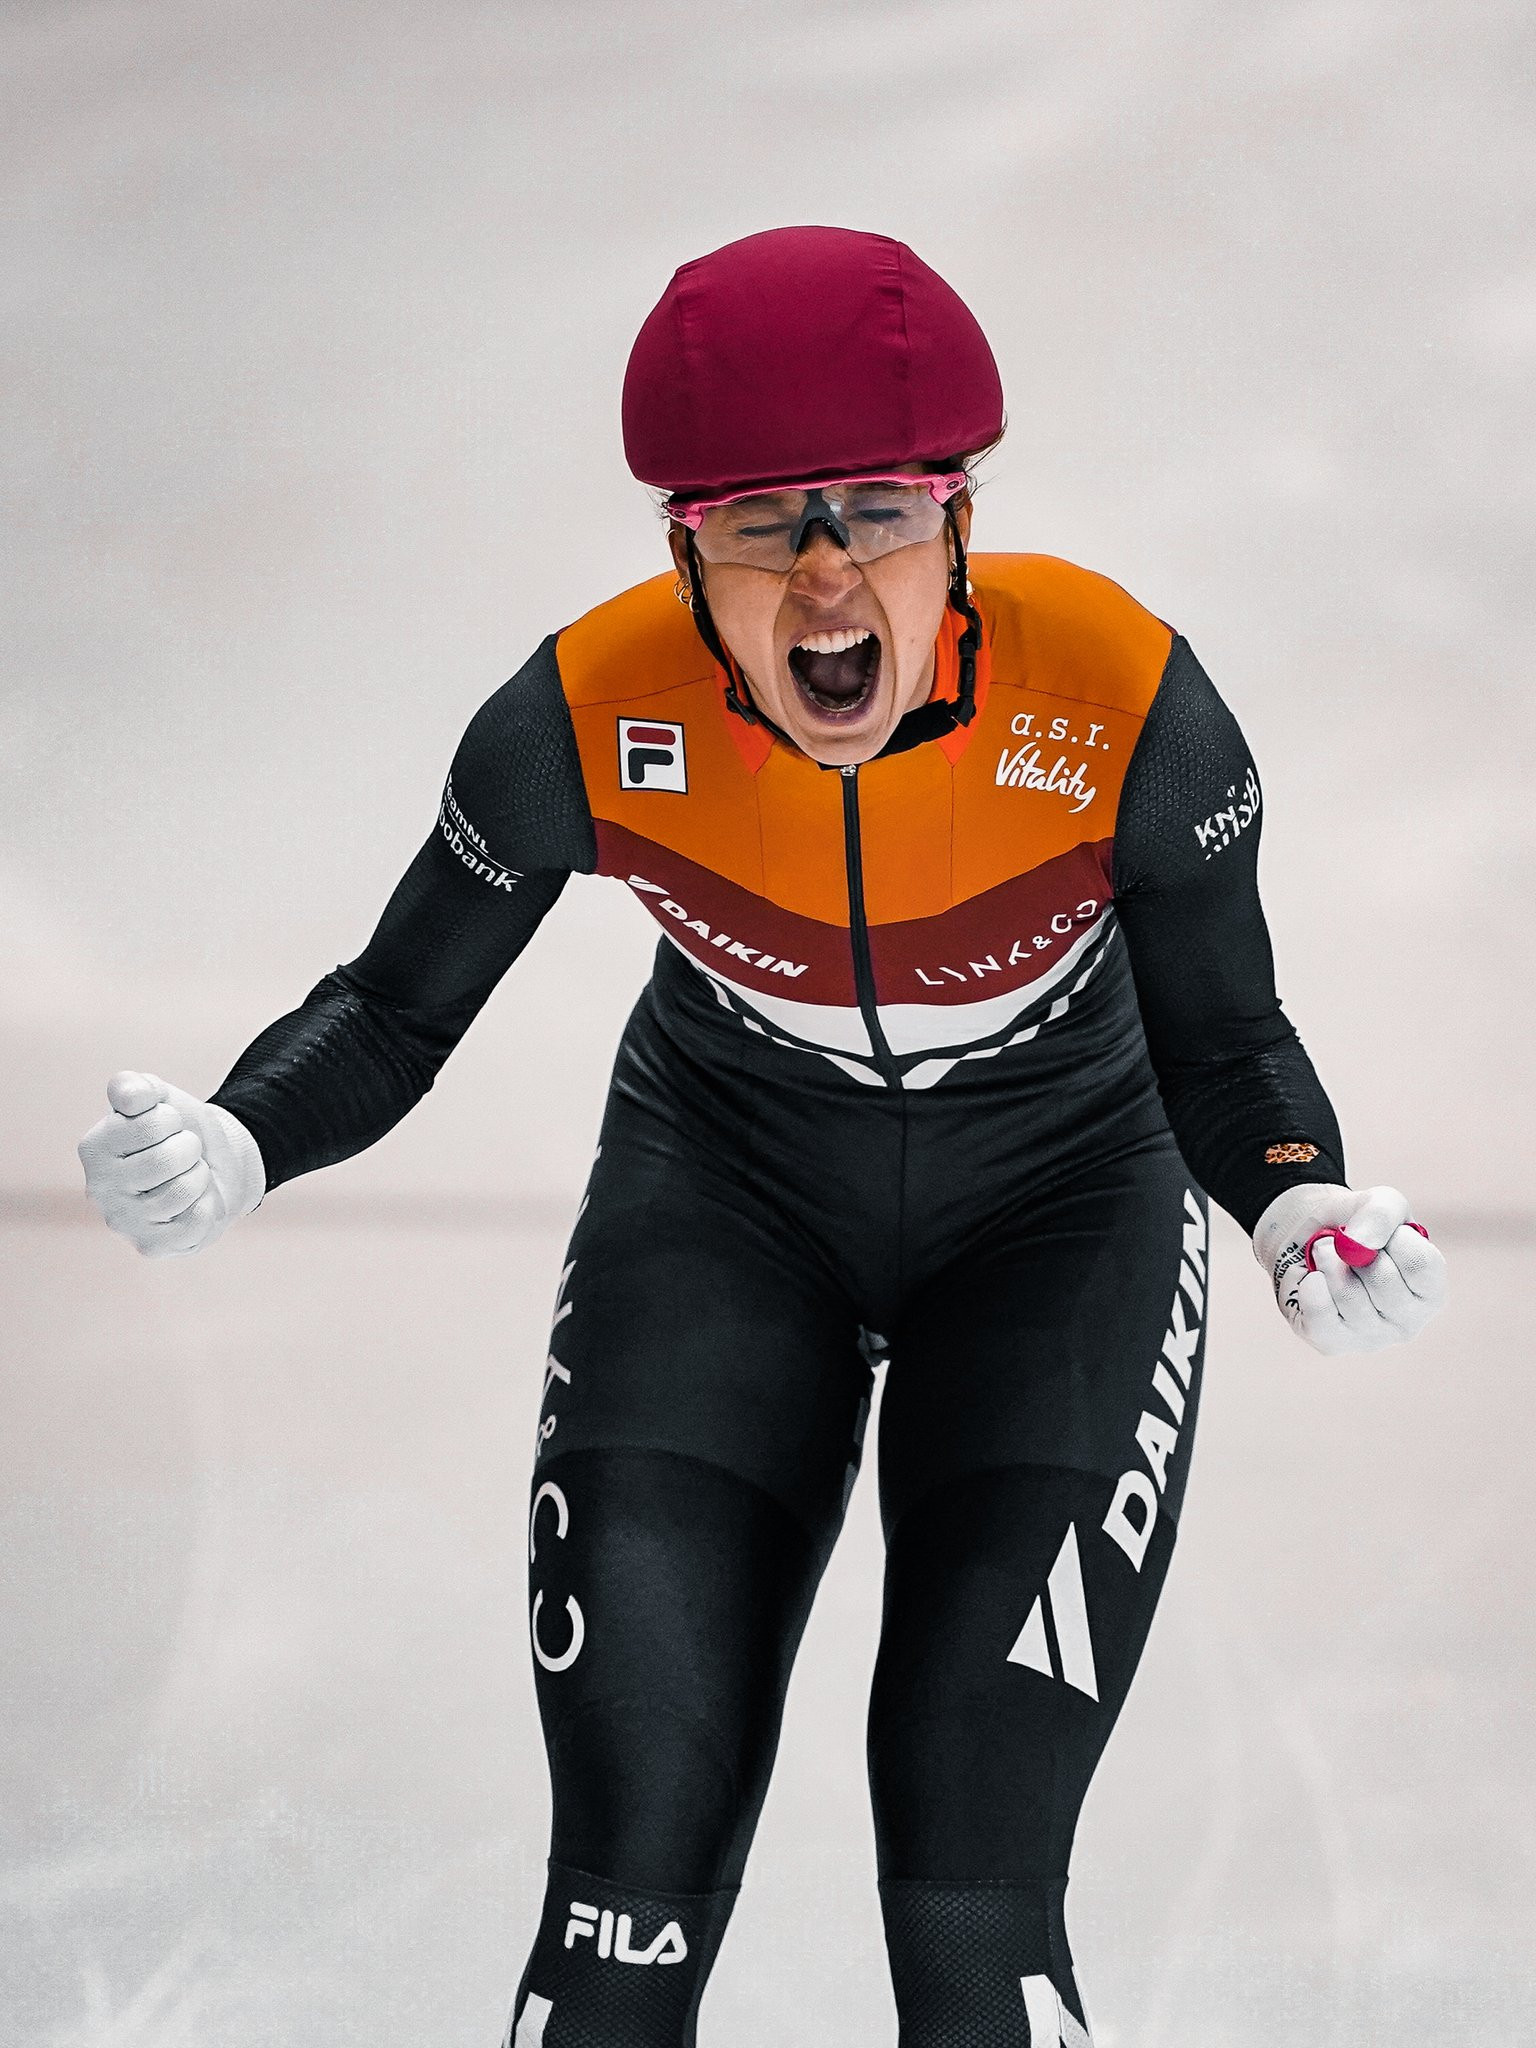 Schulting and Elistratov win overall titles at European Short Track Championships